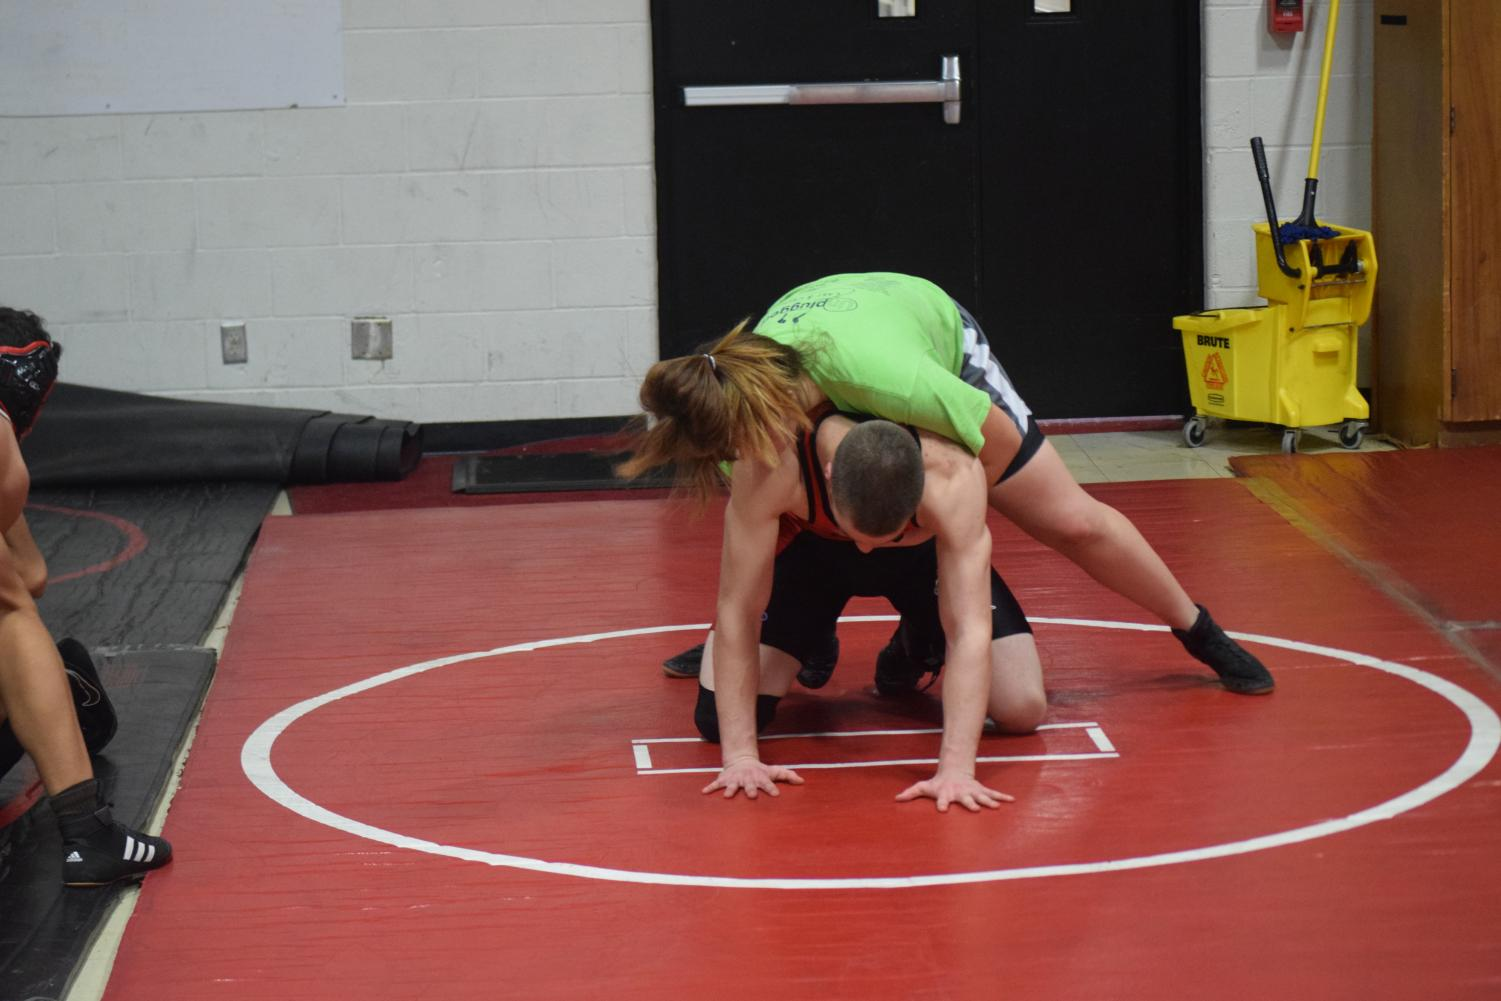 Freshman MJ Konieczny wrestling senior Joab Hackmann during practice. Due to Konieczny and Cox being in two different weight classes, the girls often have to wrestle other boys on the team. Photo by Alvi Lending.